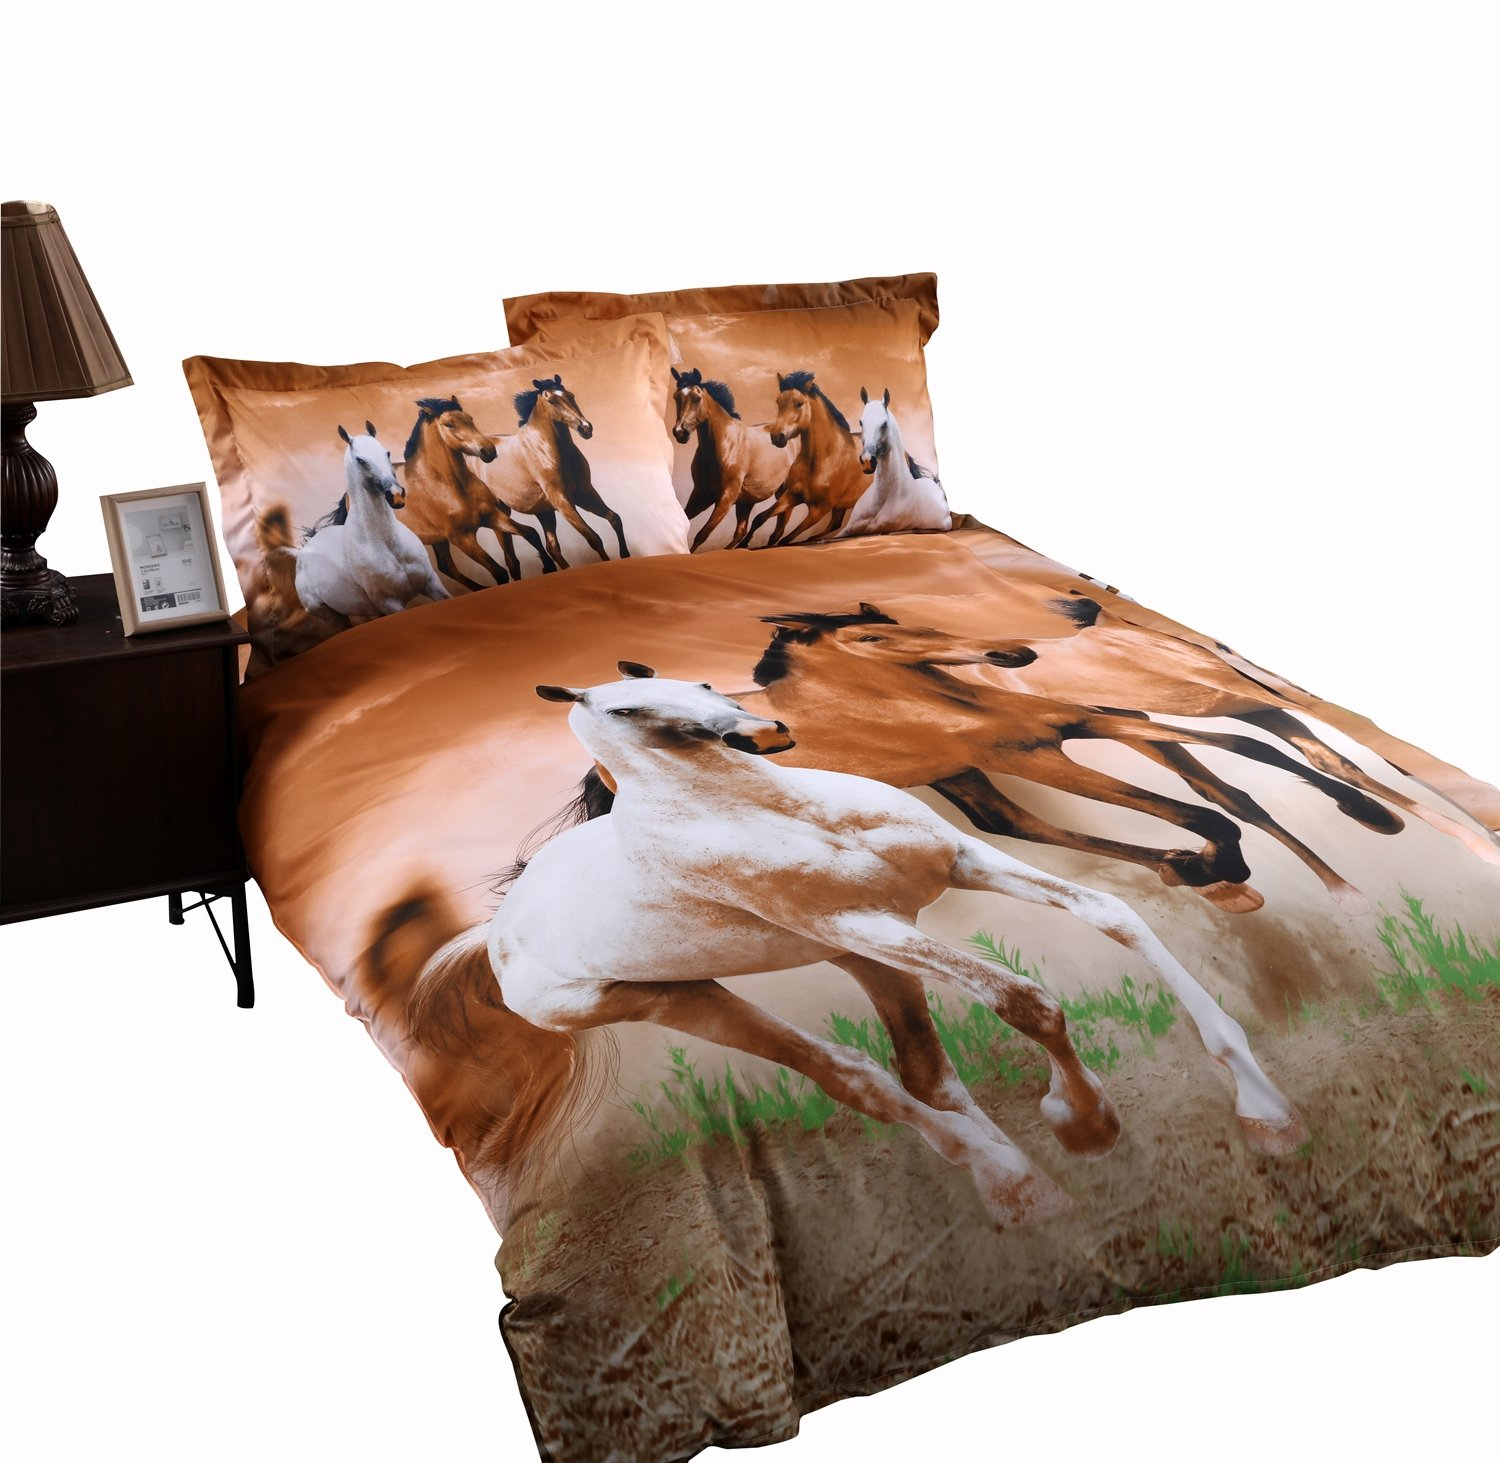 Babycare Pro Galloping Horse 3d Bedding Sets Twin Size For Kids Cheap Duvet Cover Set With Flat Sheet Twin Size Polyester 4 Pieces1 Duvet Cover Sets1